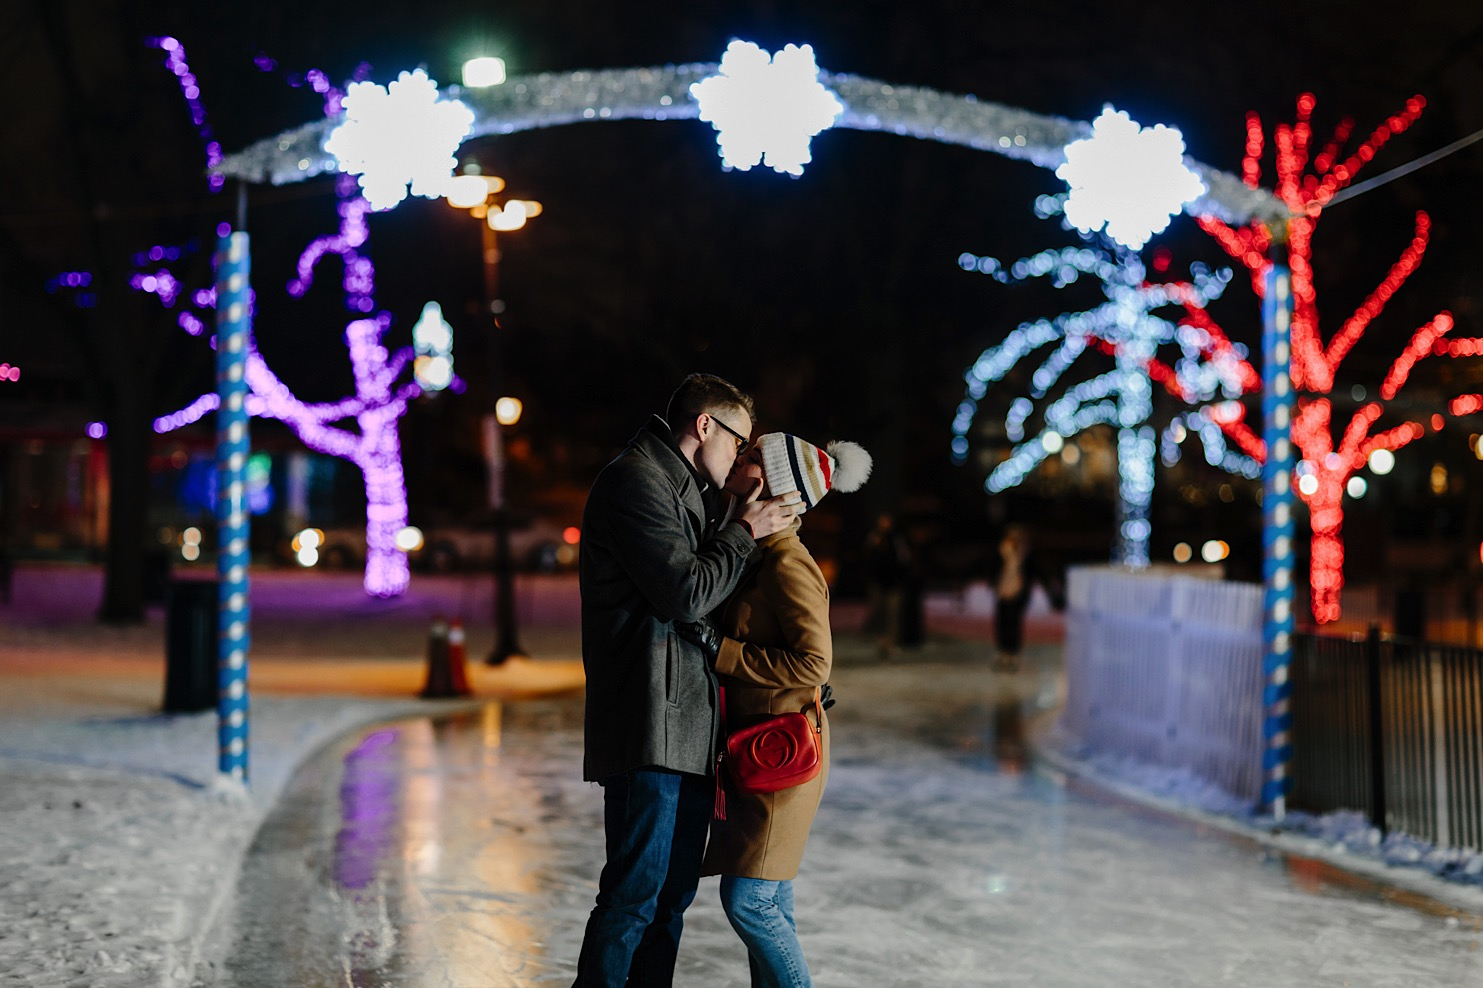 Night Winter Skating Engagement Photos